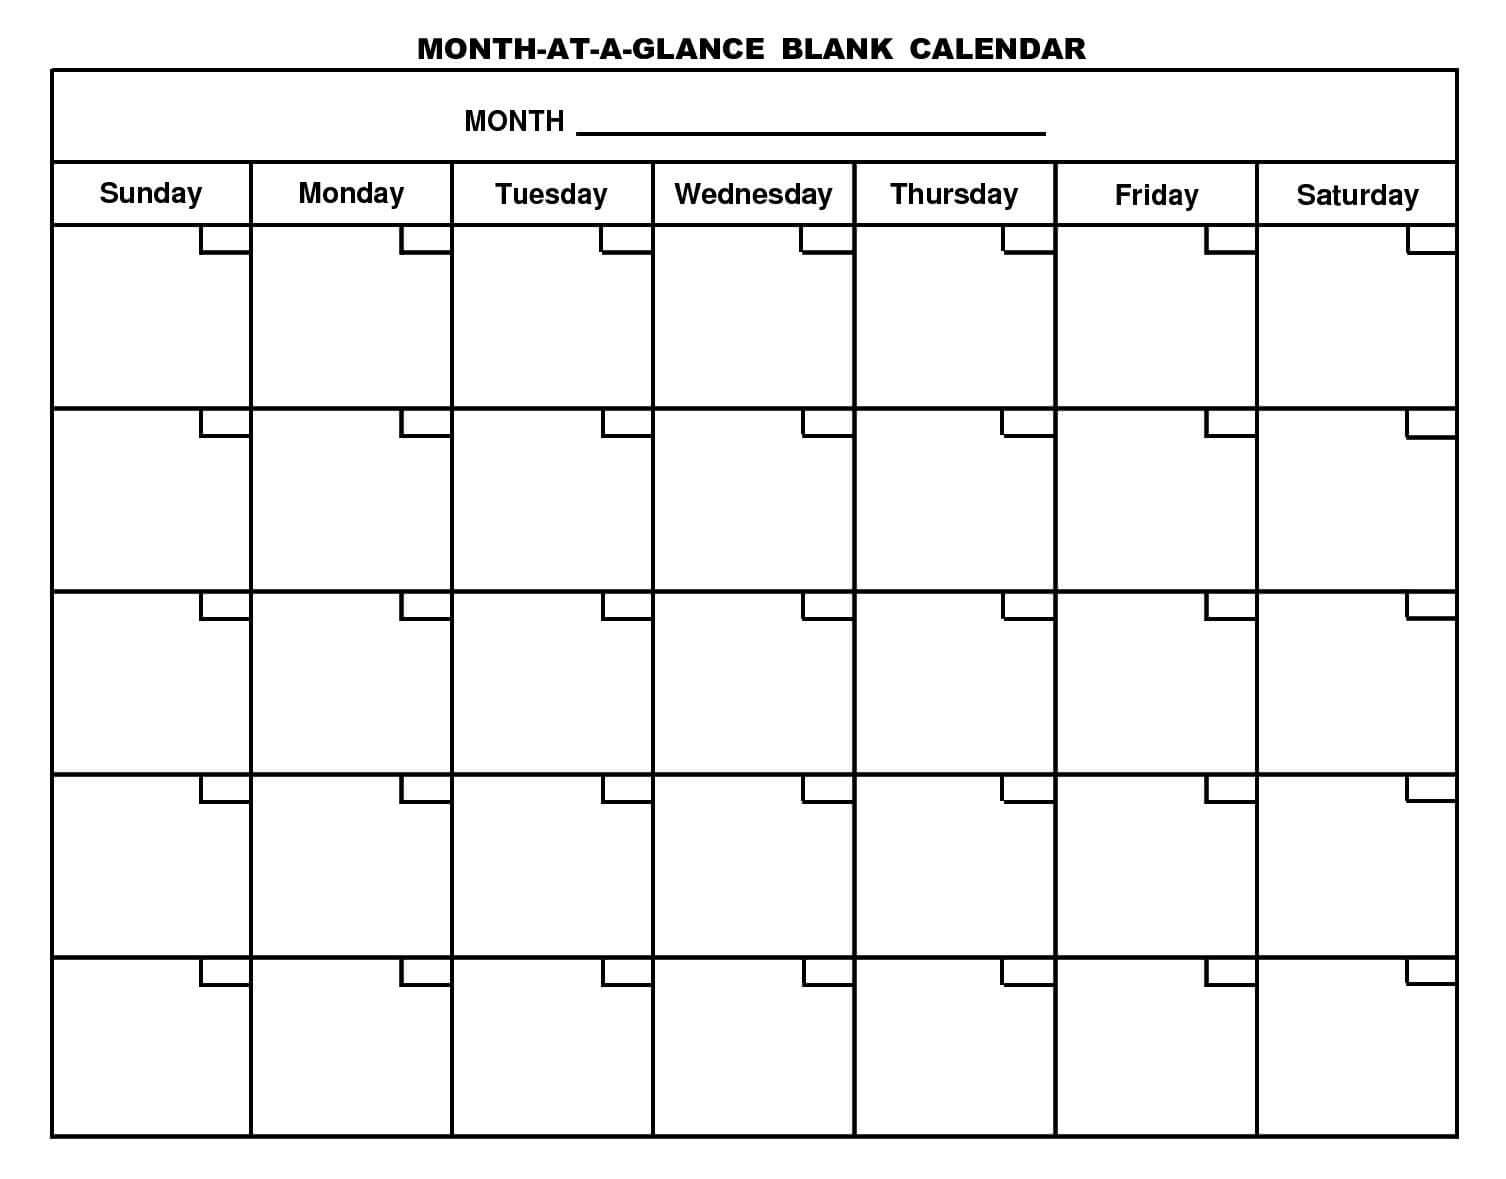 Month At A Glance Blank Calendar Template - Atlantaauctionco In Month At A Glance Blank Calendar Template